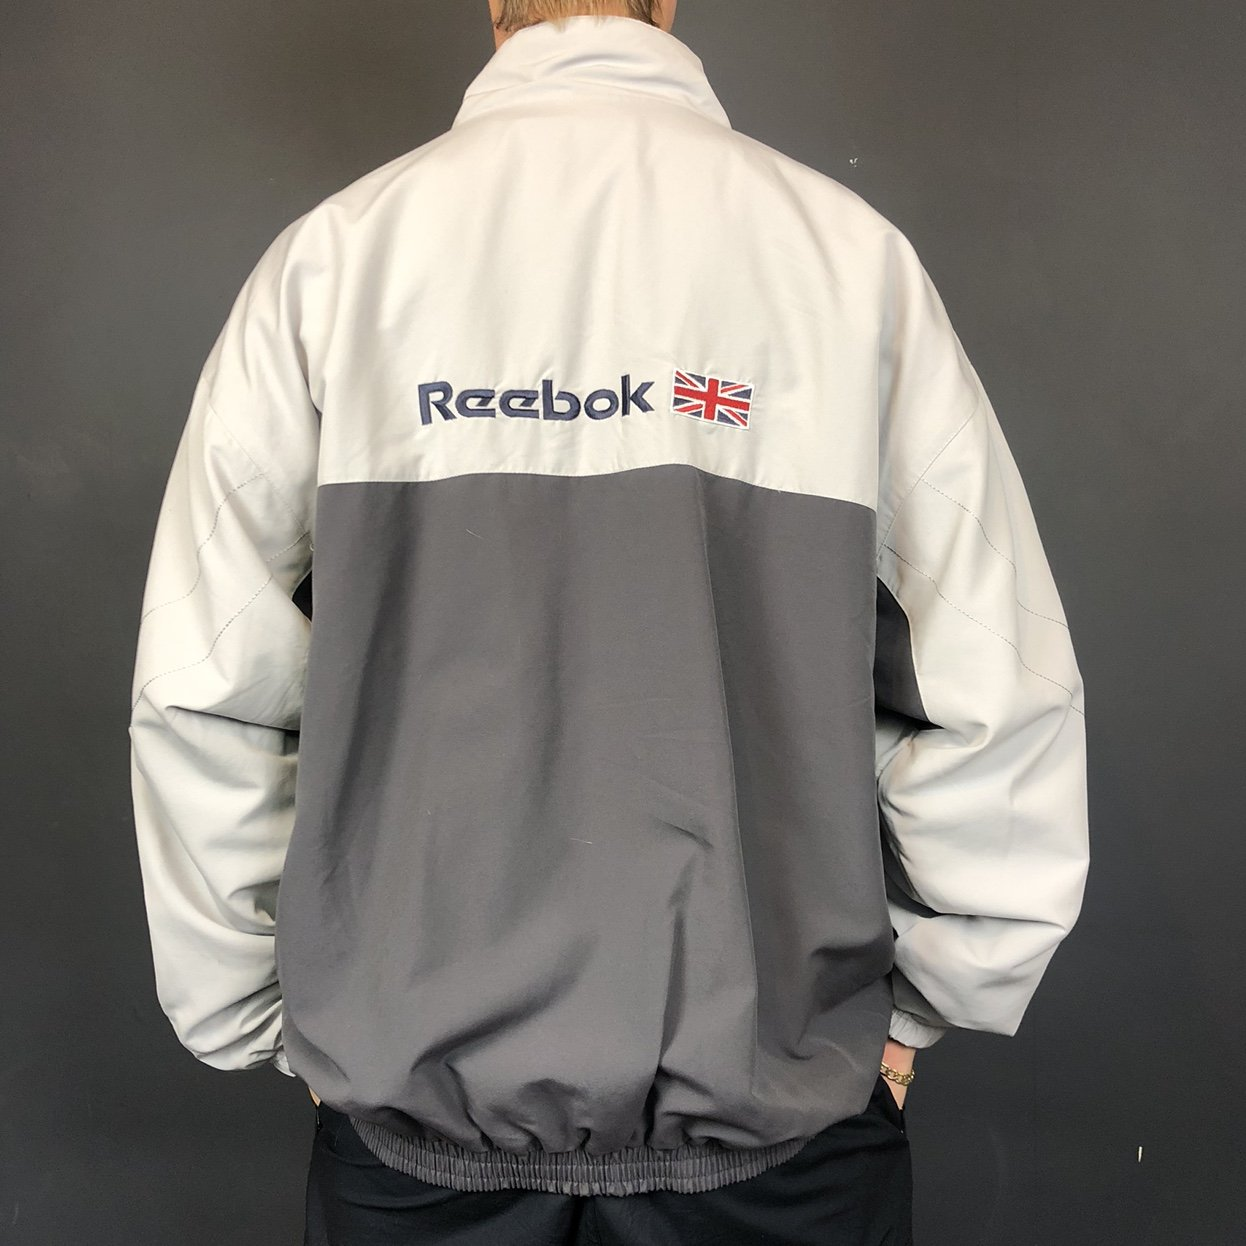 Vintage Reebok Jacket with Embroidered Spellout & Logo - XL - Vintique Clothing